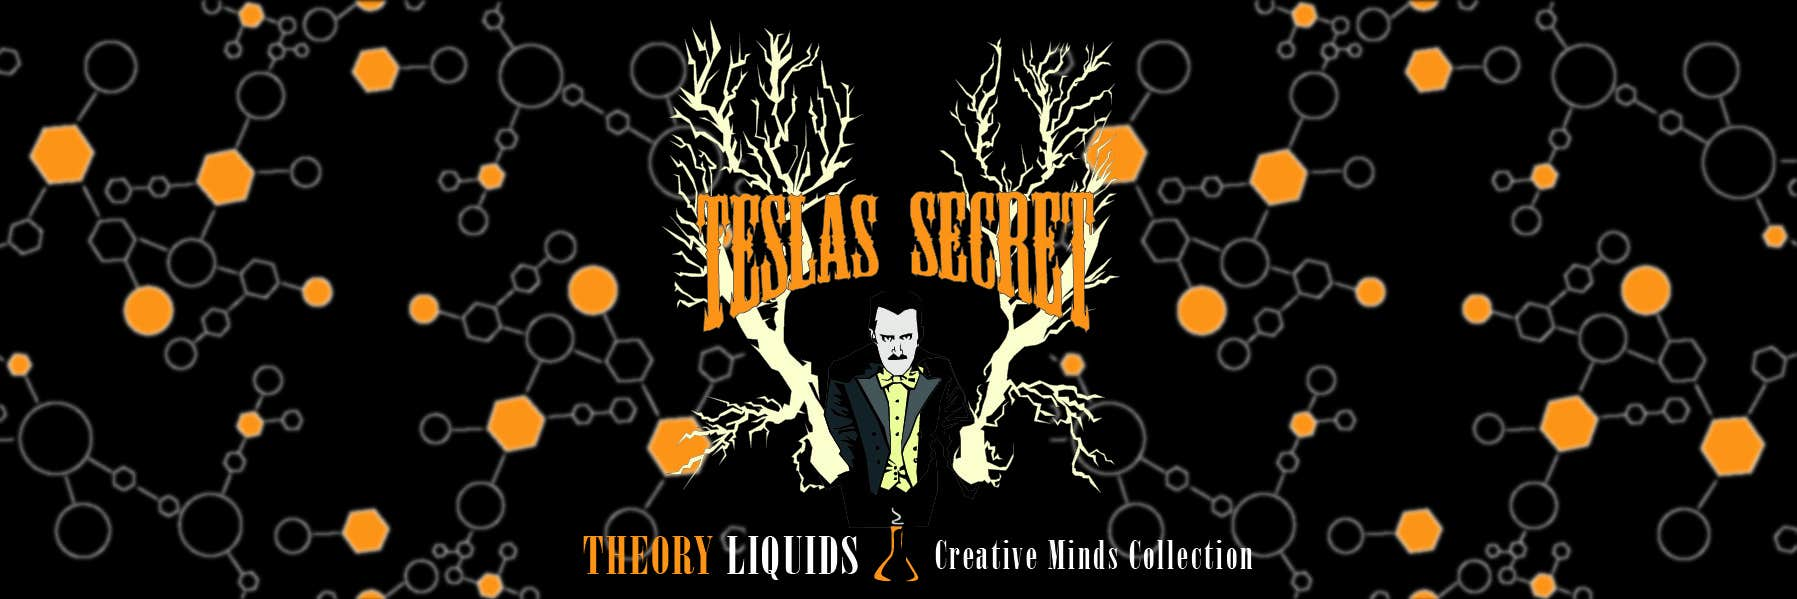 Contest Entry #                                        18                                      for                                         Theory Liquids Banner and Poster Contest